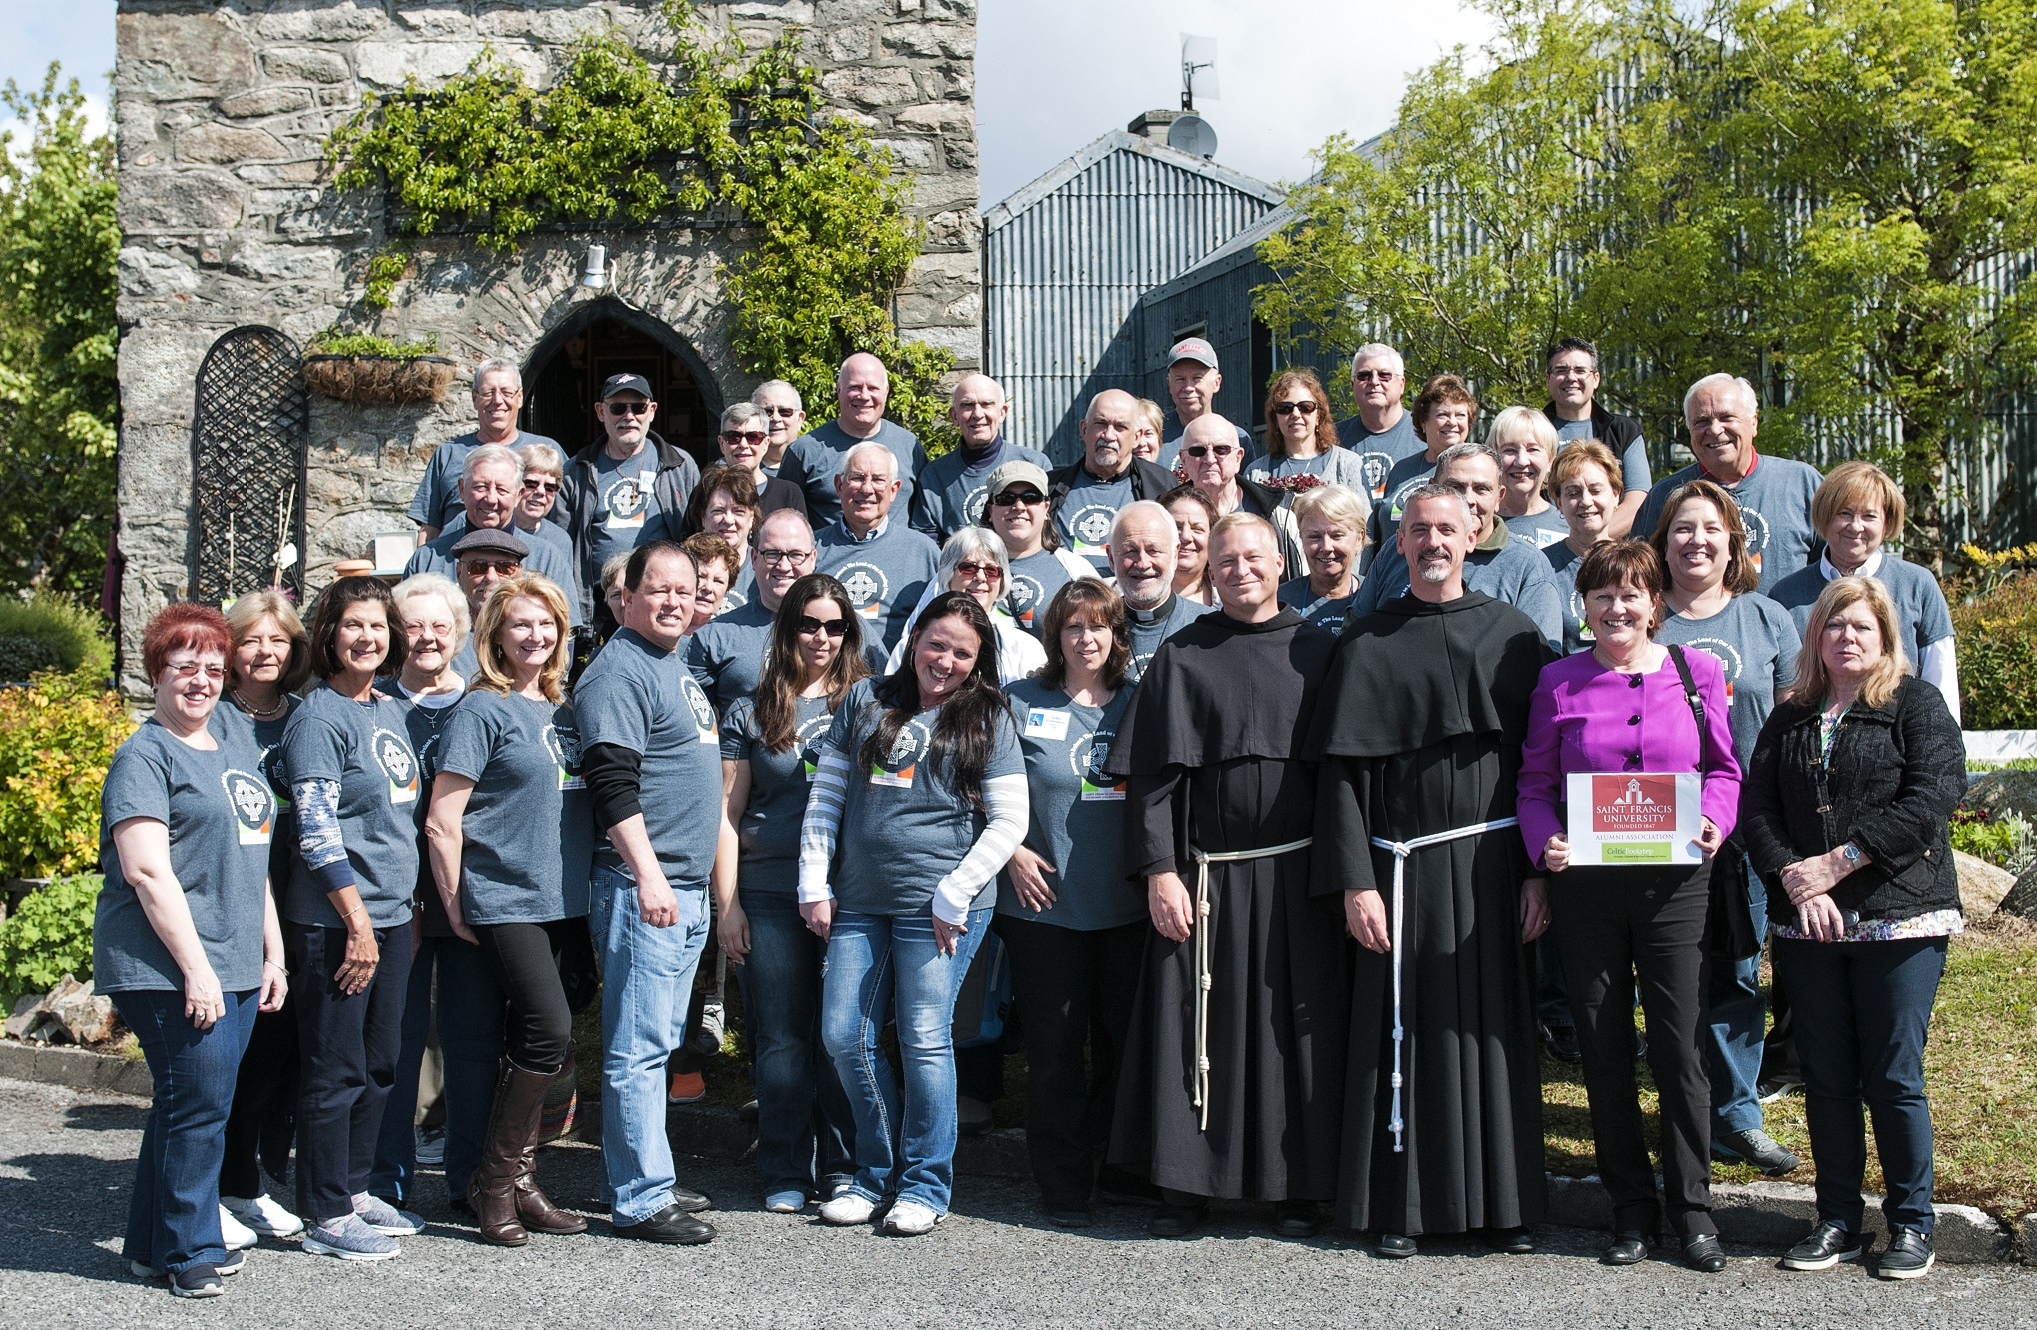 Us franciscans pay tribute to pioneering irish friars for The franciscan